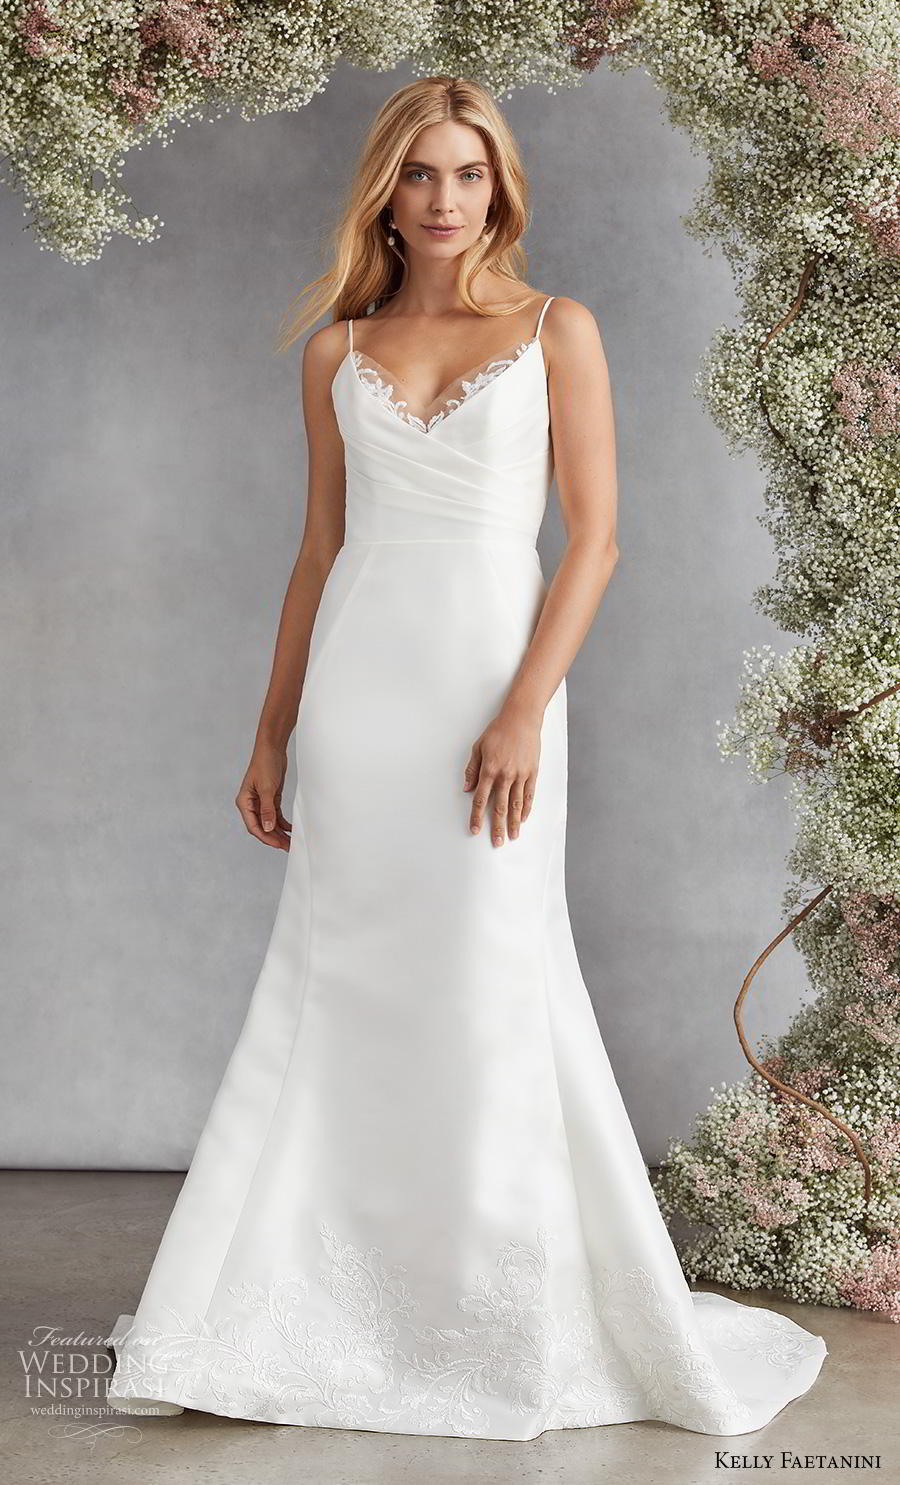 kelly faetanini fall 2020 bridal sleeveless spaghetti strap v neck ruched bodice simple classic fit and flare wedding dress backless medium train (15) mv